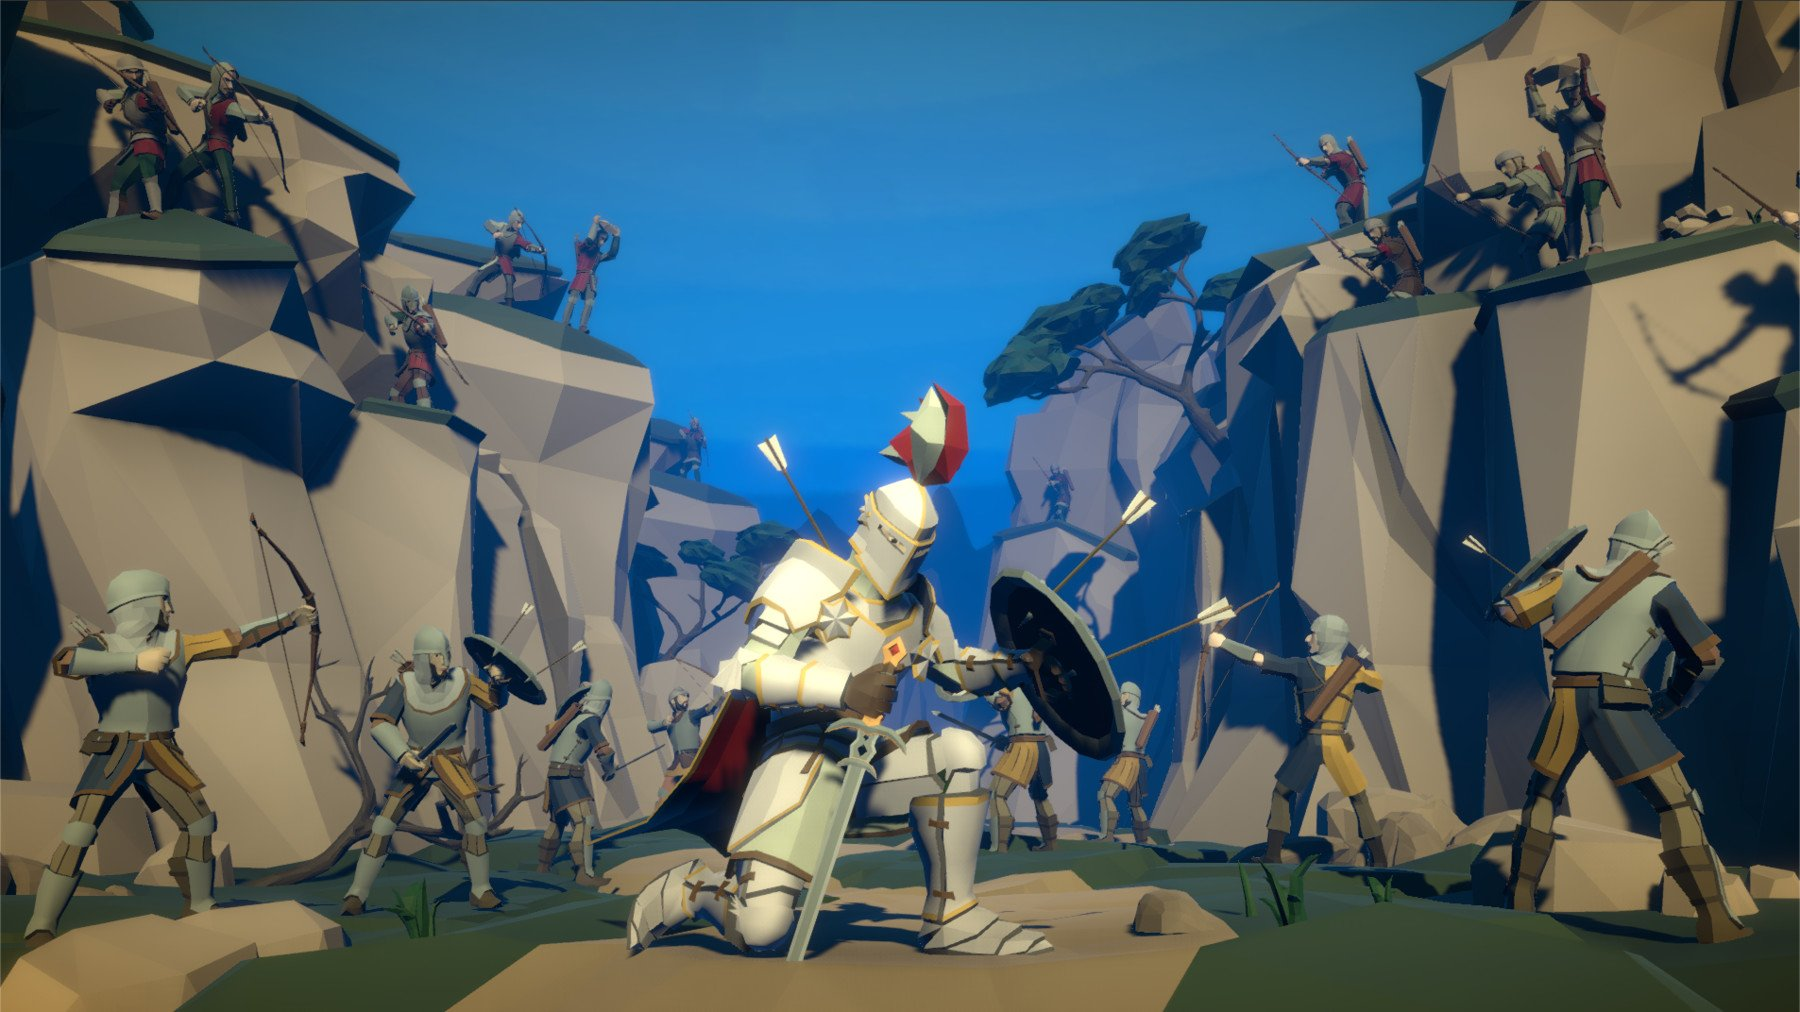 Pt medieval lowpoly characters diorama